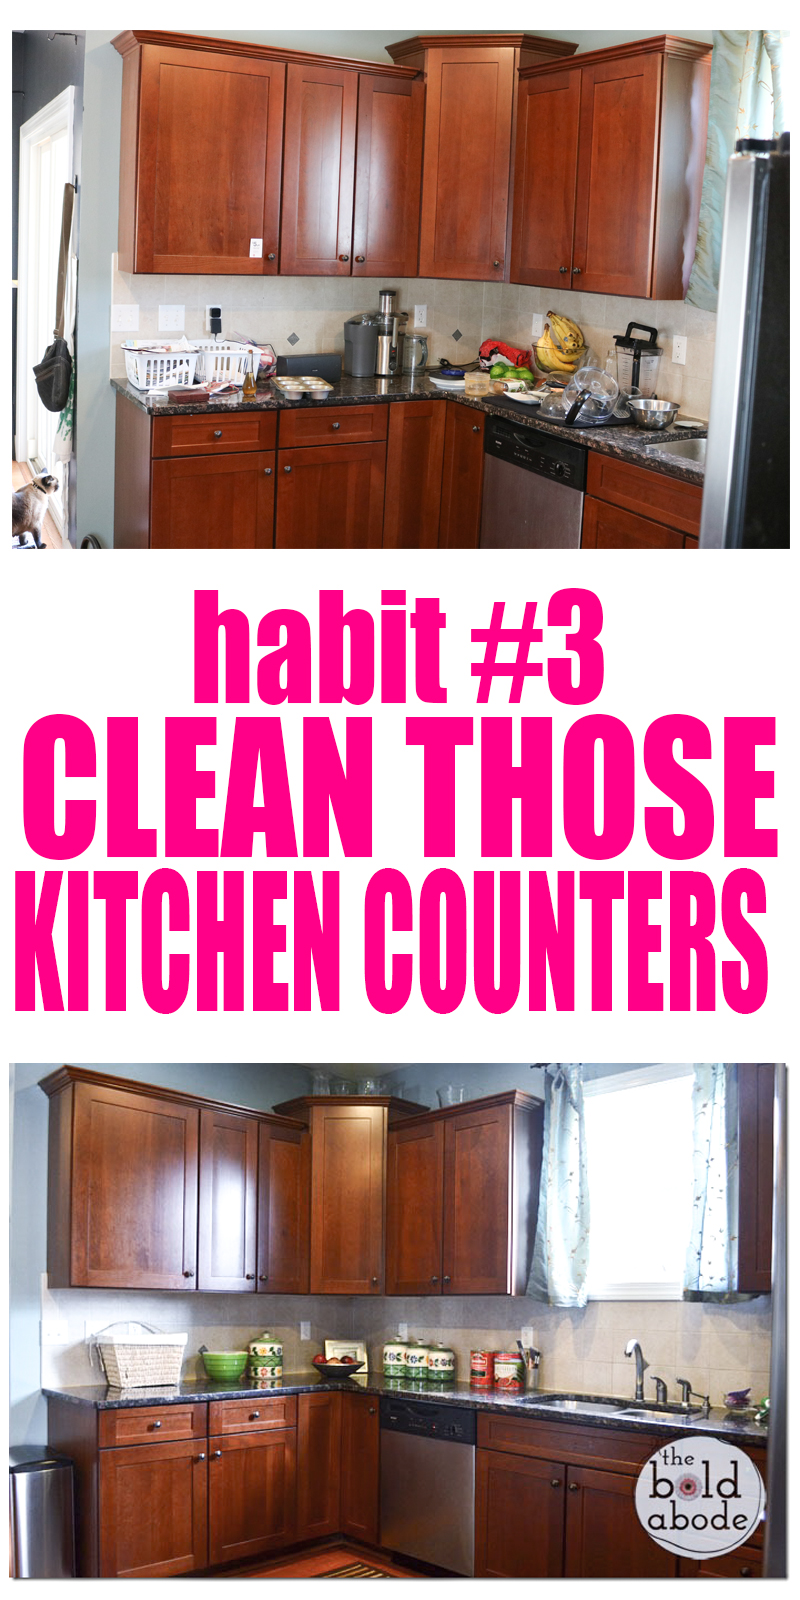 SELF CLEANING HOME PART 3: Clean Kitchen Counters! Pop over for the entire series and start small habits that will make your home feel like it cleans itself!